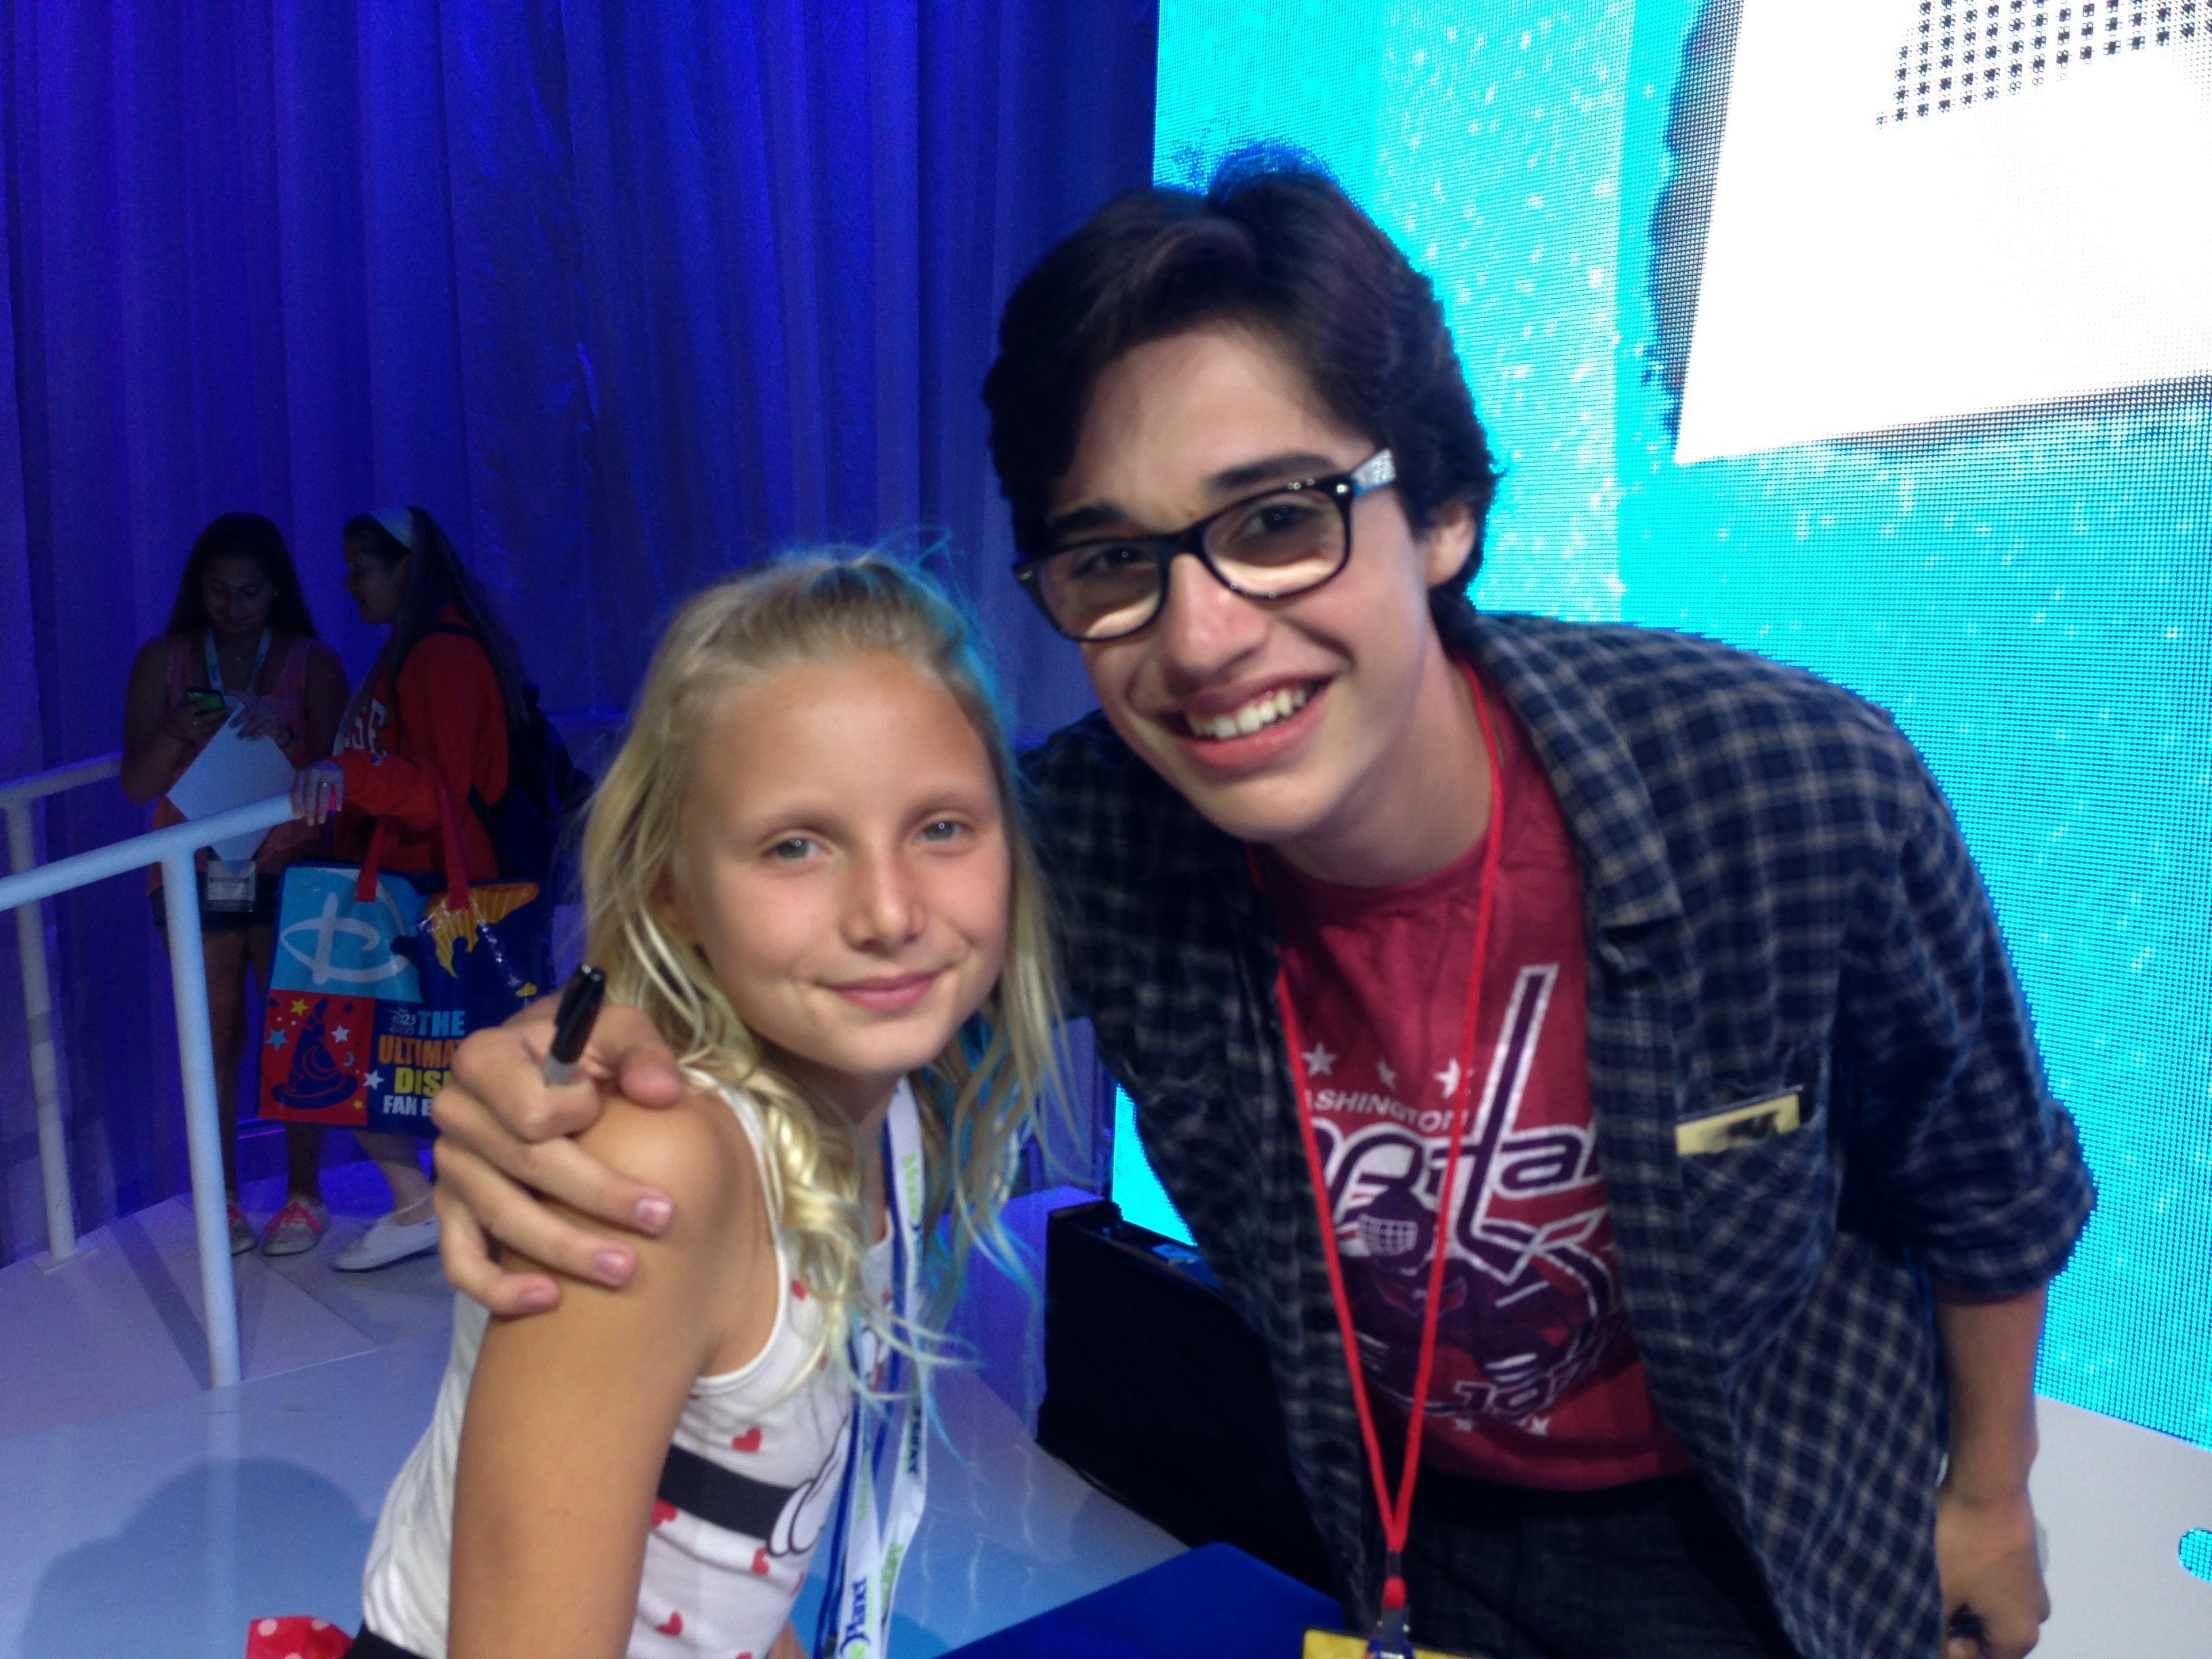 The Liv And Maddie Cast Meet And Greet At D23 Expo Reach For The Stars